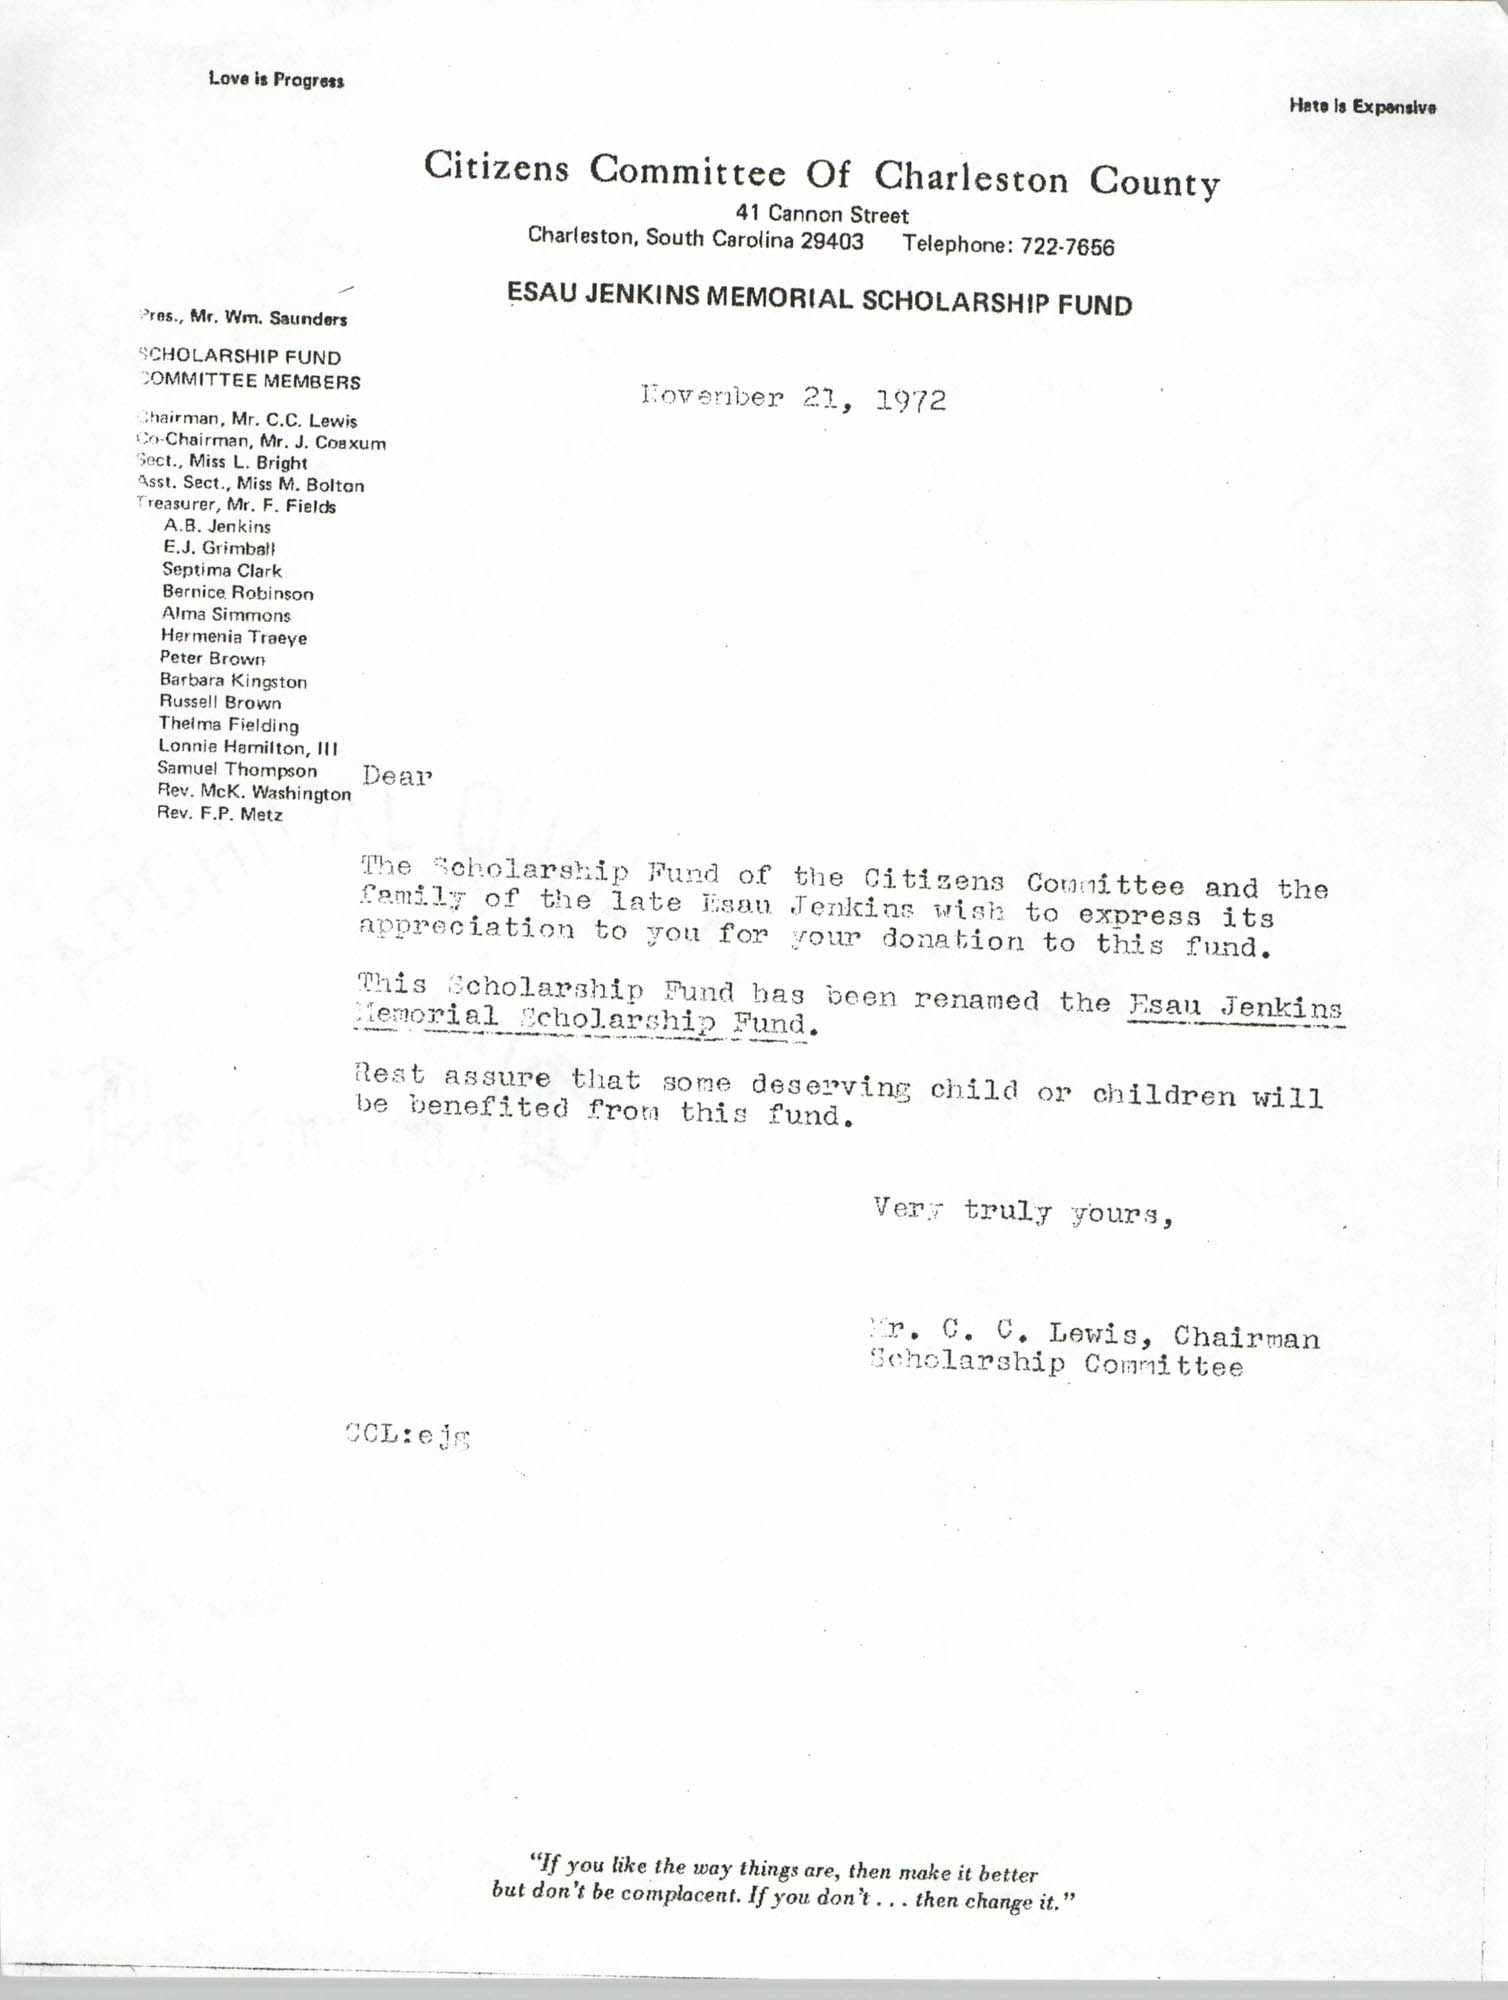 Esau Jenkins Memorial Scholarship Fund Correspondence Draft, November 21, 1972